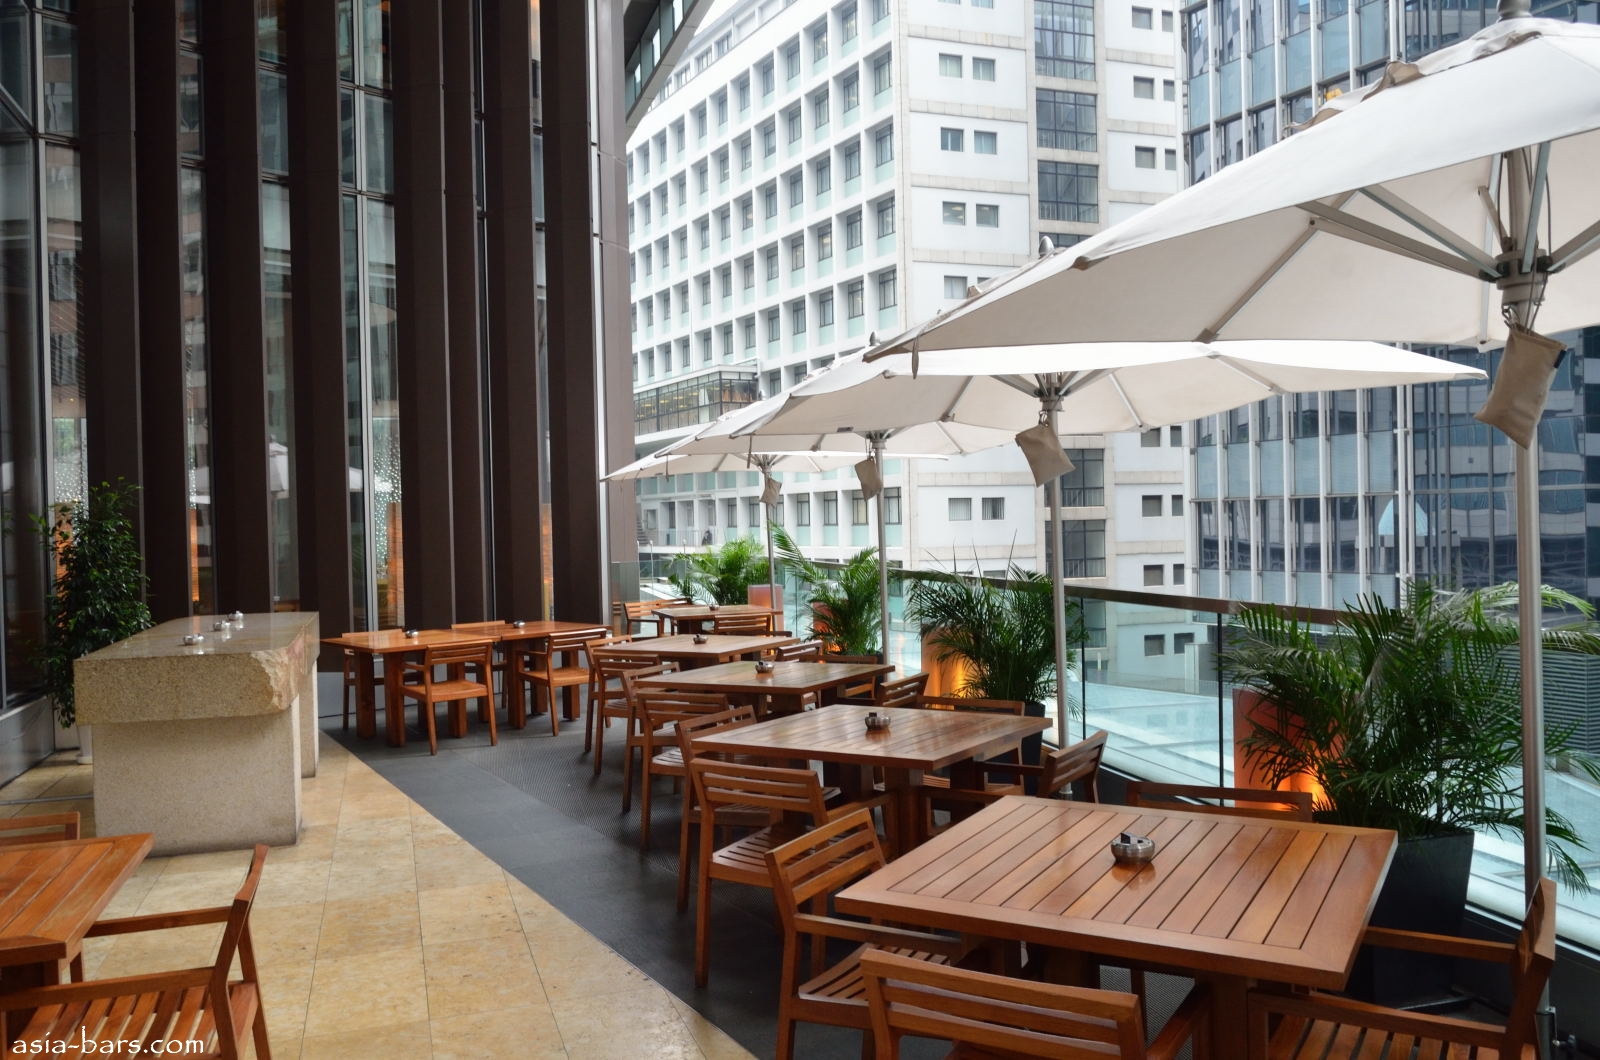 Zuma hong kong restaurant and lounge bar featuring for Zuma miami terrace